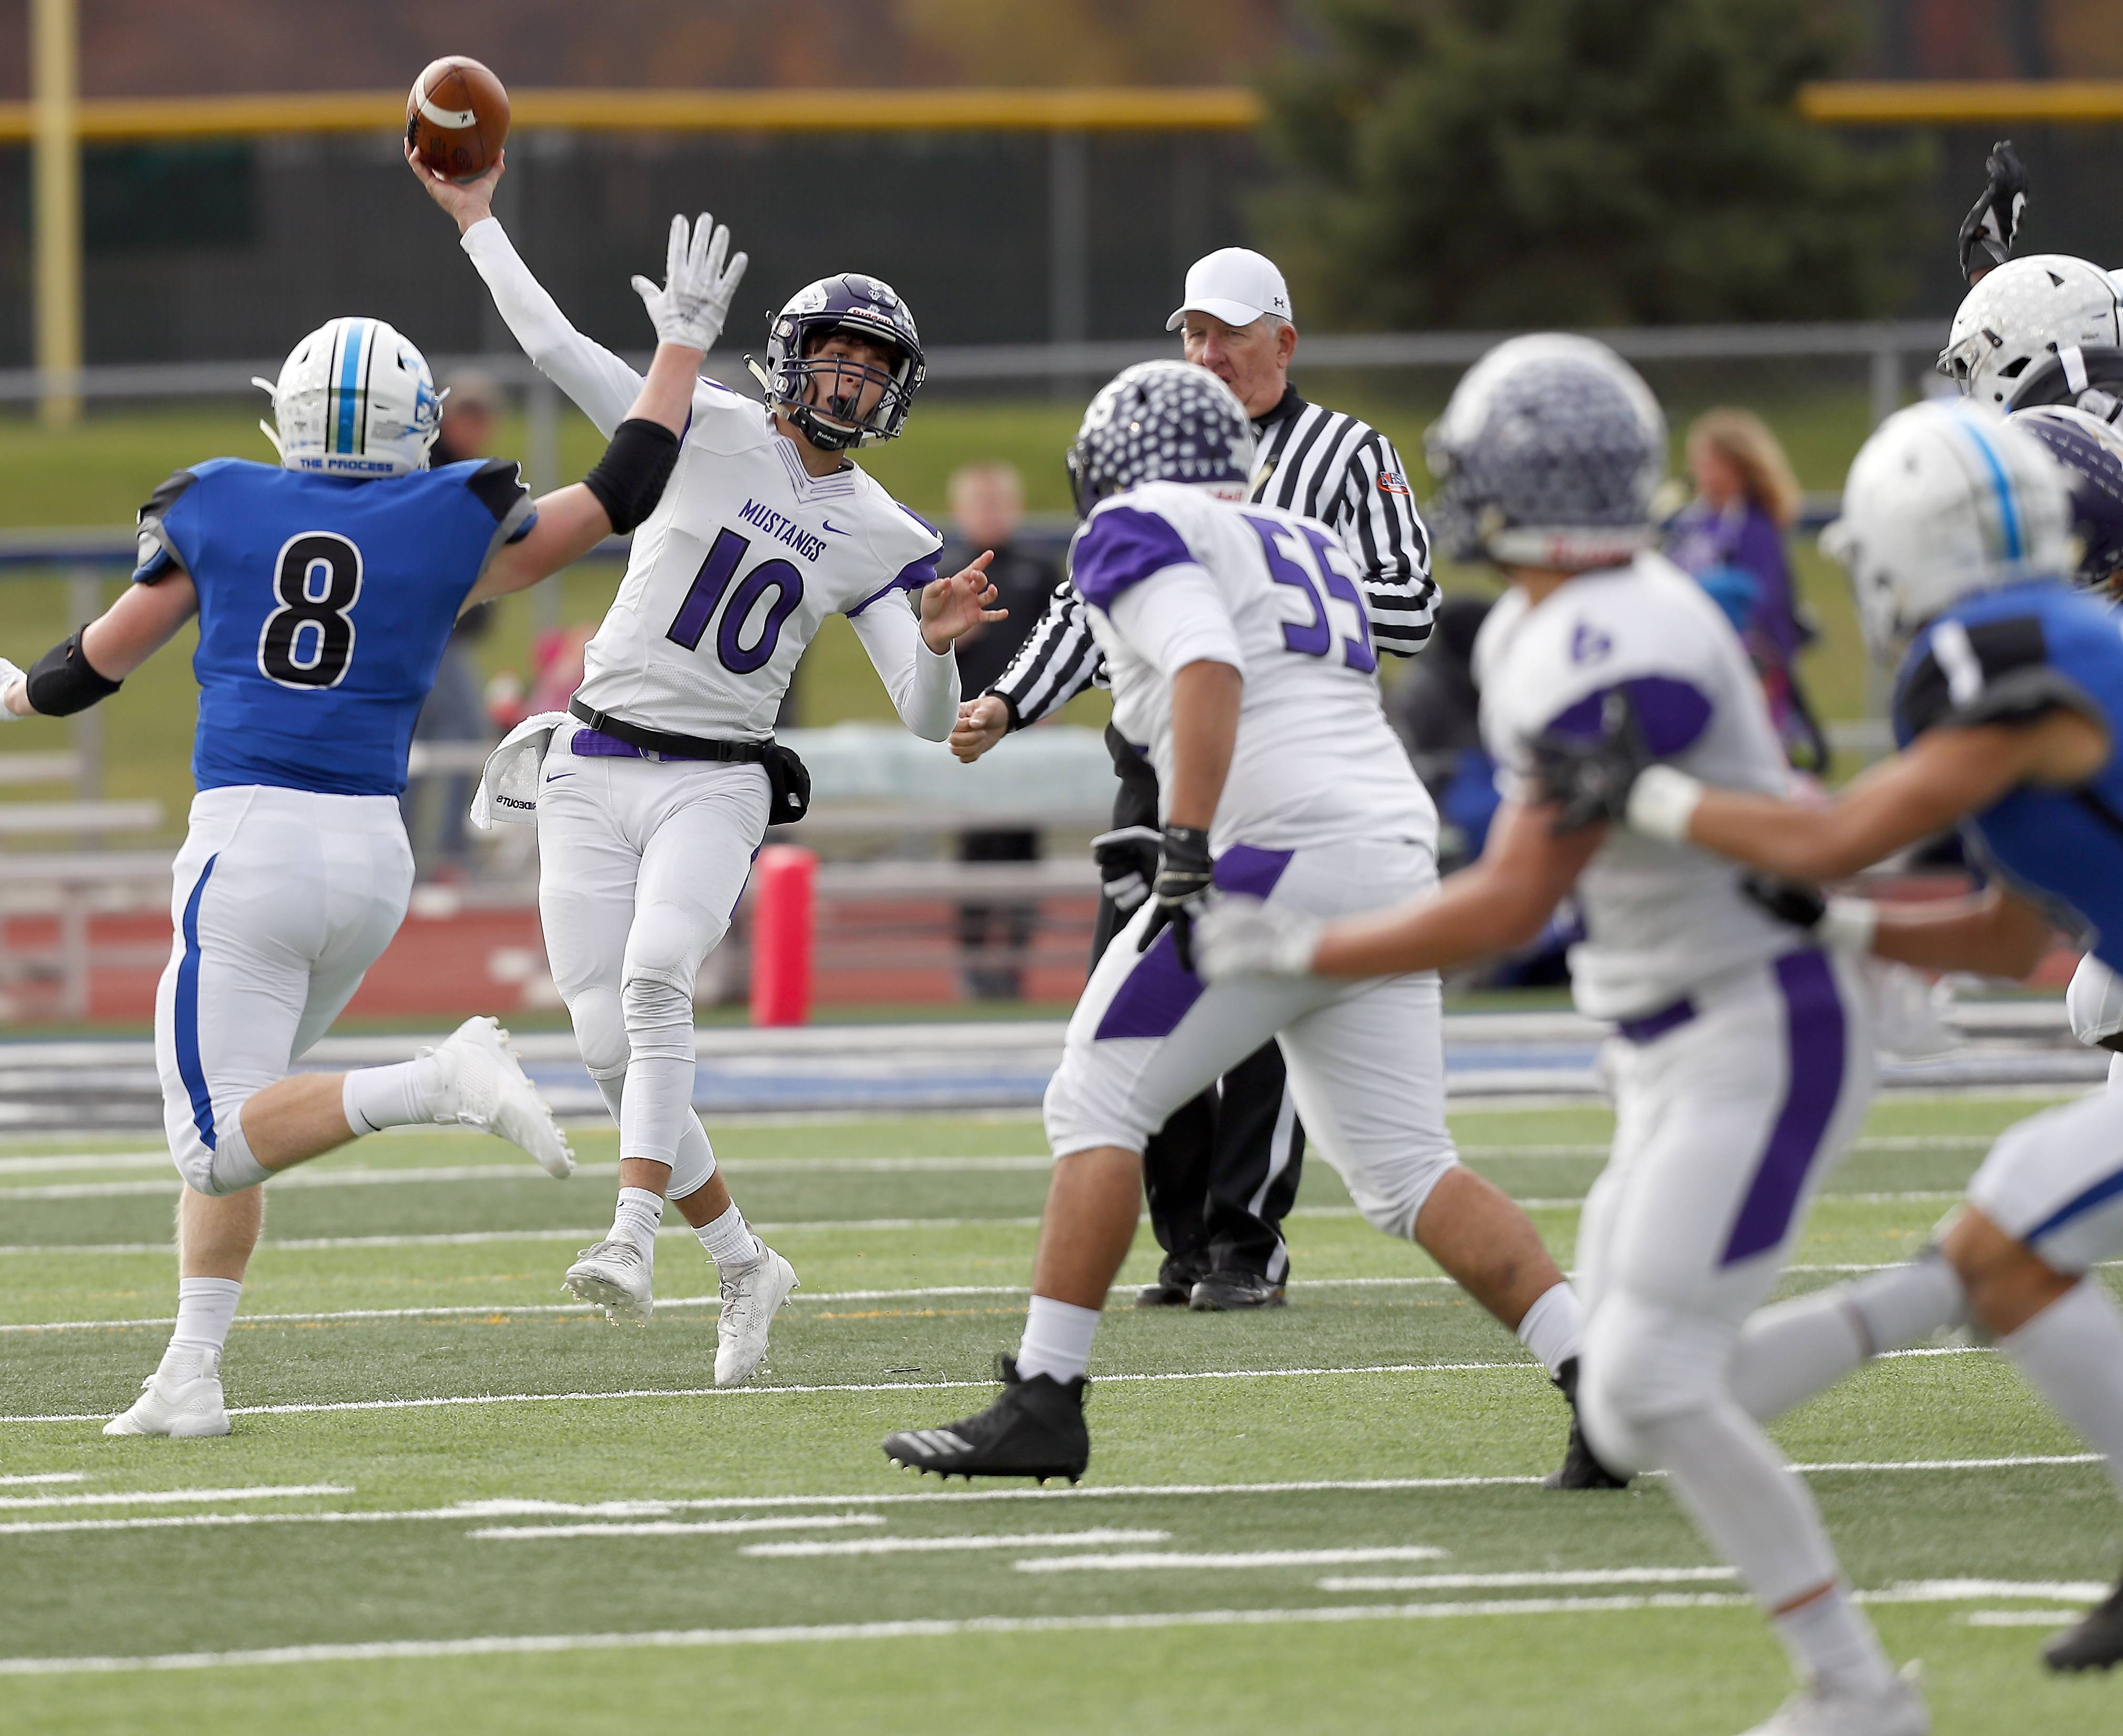 Rolling Meadows' Arkadiusz Kleniuk (10) throws over St. Charles North's Ben Furtney (8) Saturday during IHSA Class 7A playoff football in St. Charles.